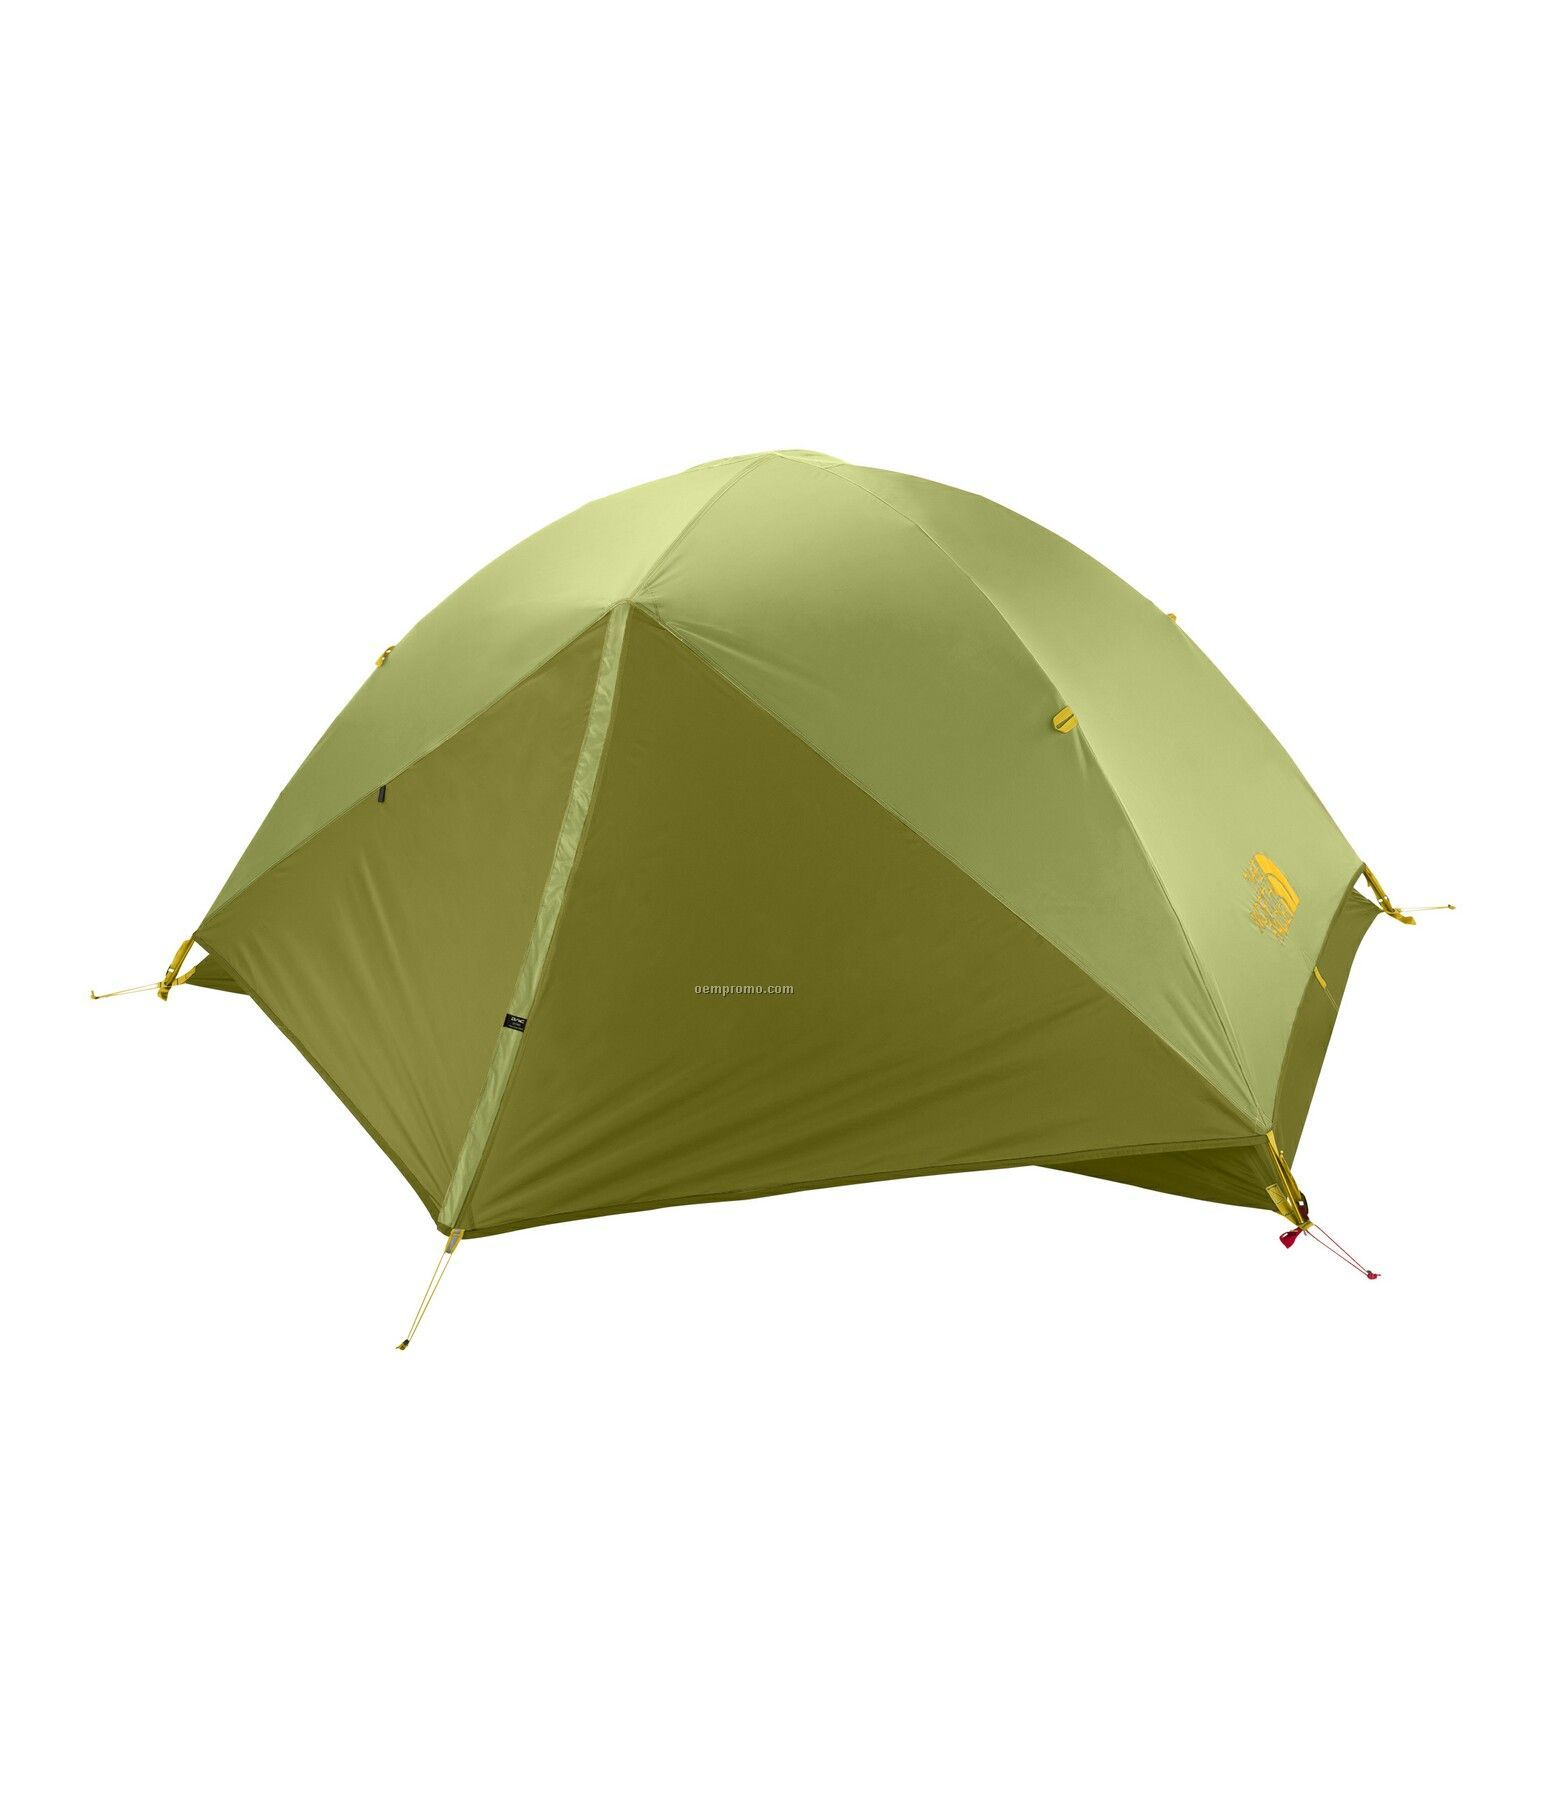 best service 8a27e 45404 The North Face Rock 32 Tent,China Wholesale The North Face ...